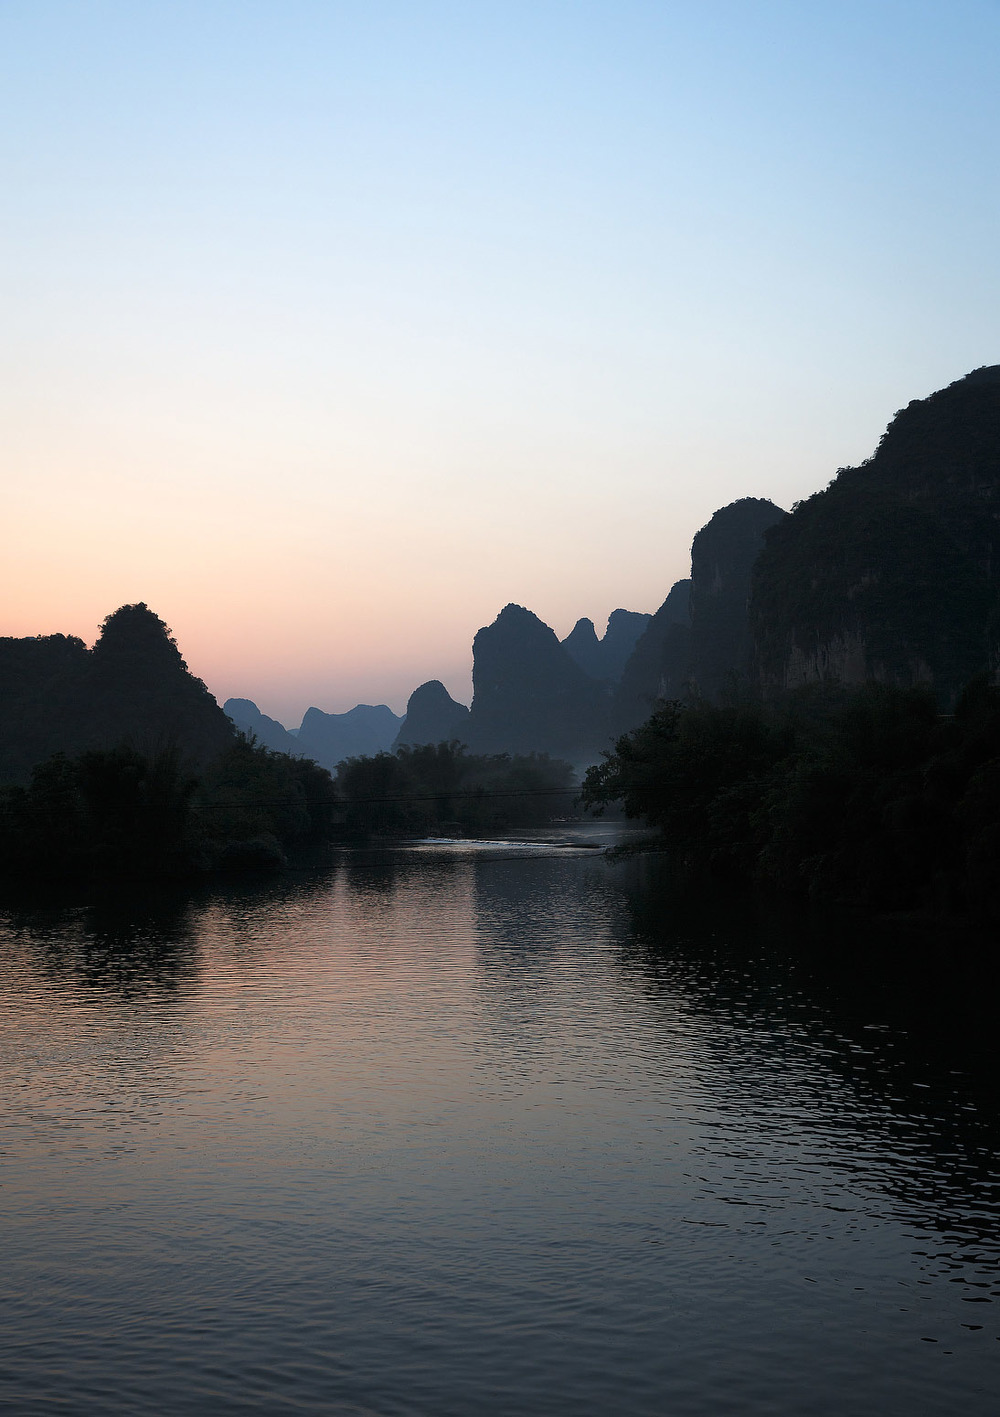 20140501_guilin_01681_final_353x500_1550px.JPG